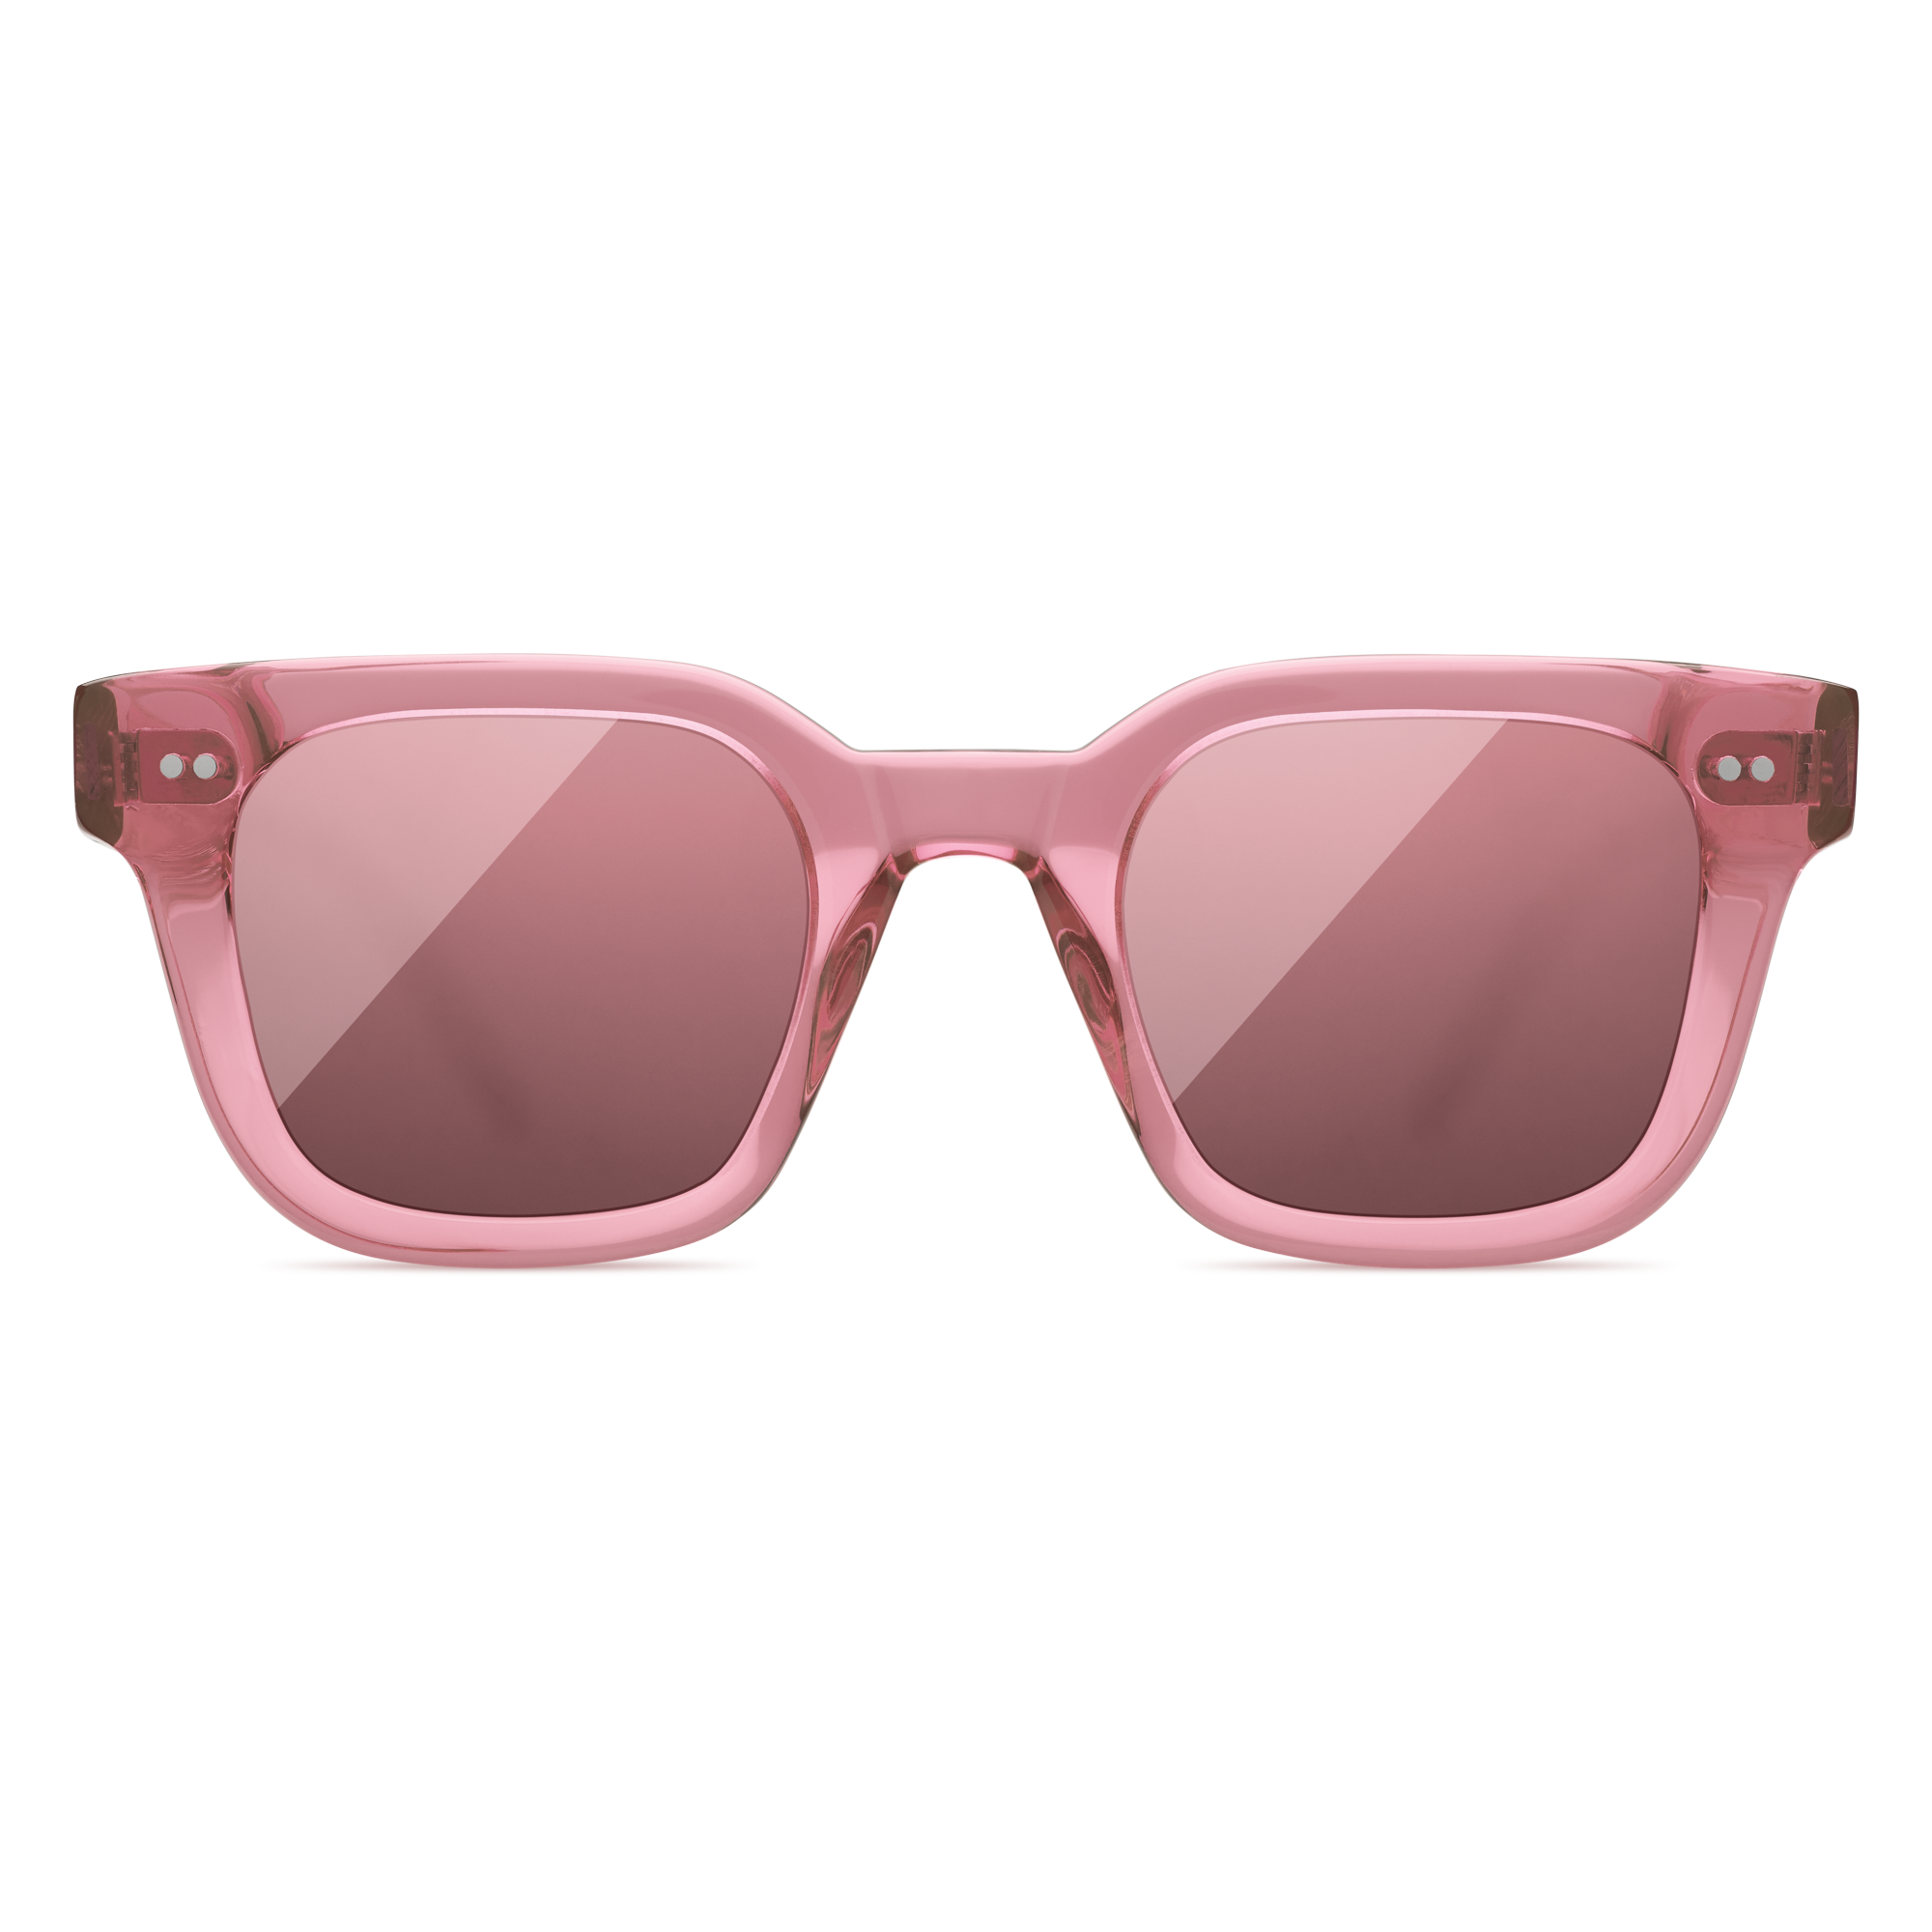 66202d66e CHIMI SUNGLASSES GUAVA 04 - Shop by Style-Eyewear : Home - CHIMI SUMMER 18